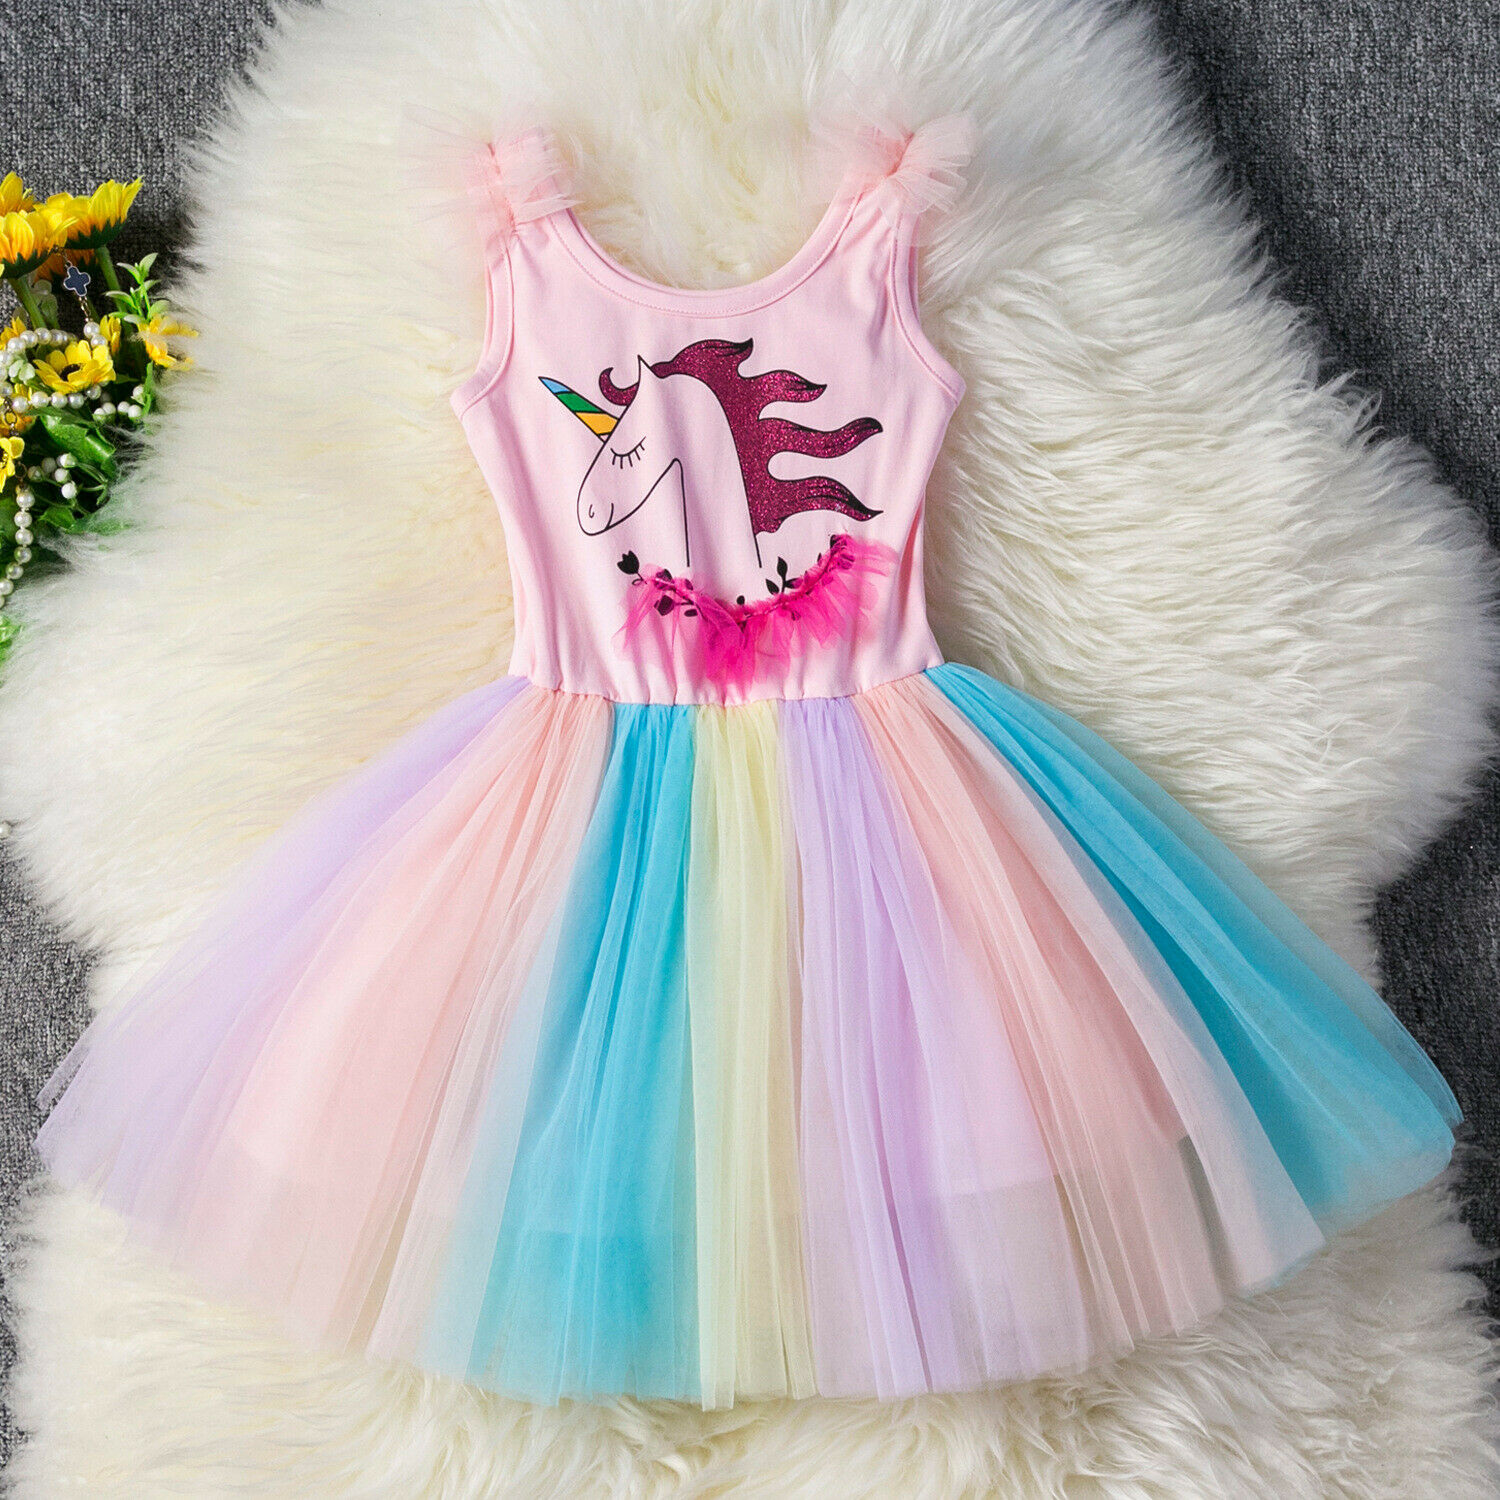 2019 Kids Girls Sequin Unicorn Cartoon Cosplay Costume Party Dress Gift ZG9